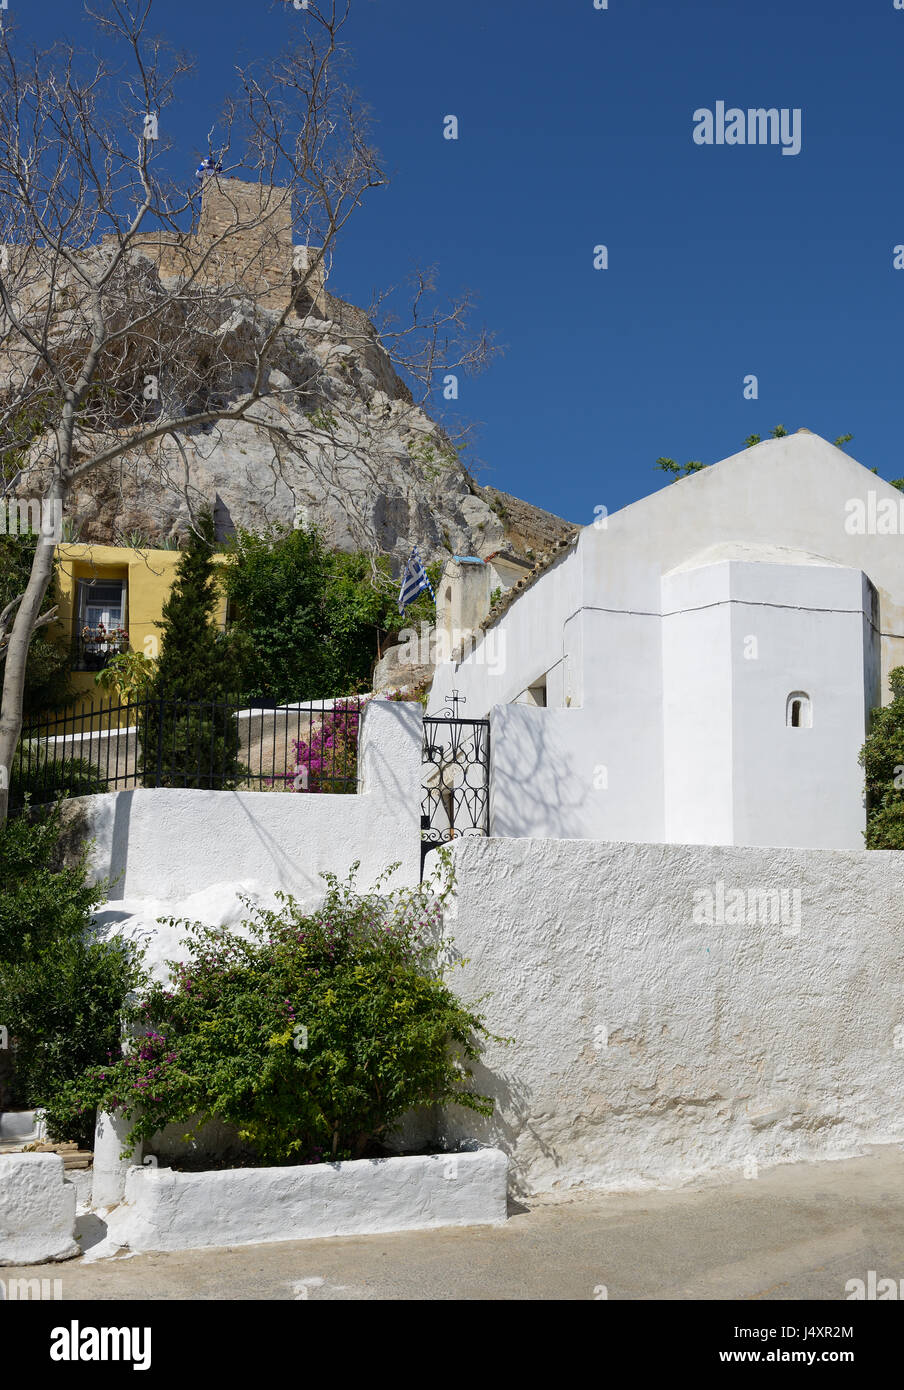 Church of Agios Georgios of the Rock at Anaftioftika - Stock Image